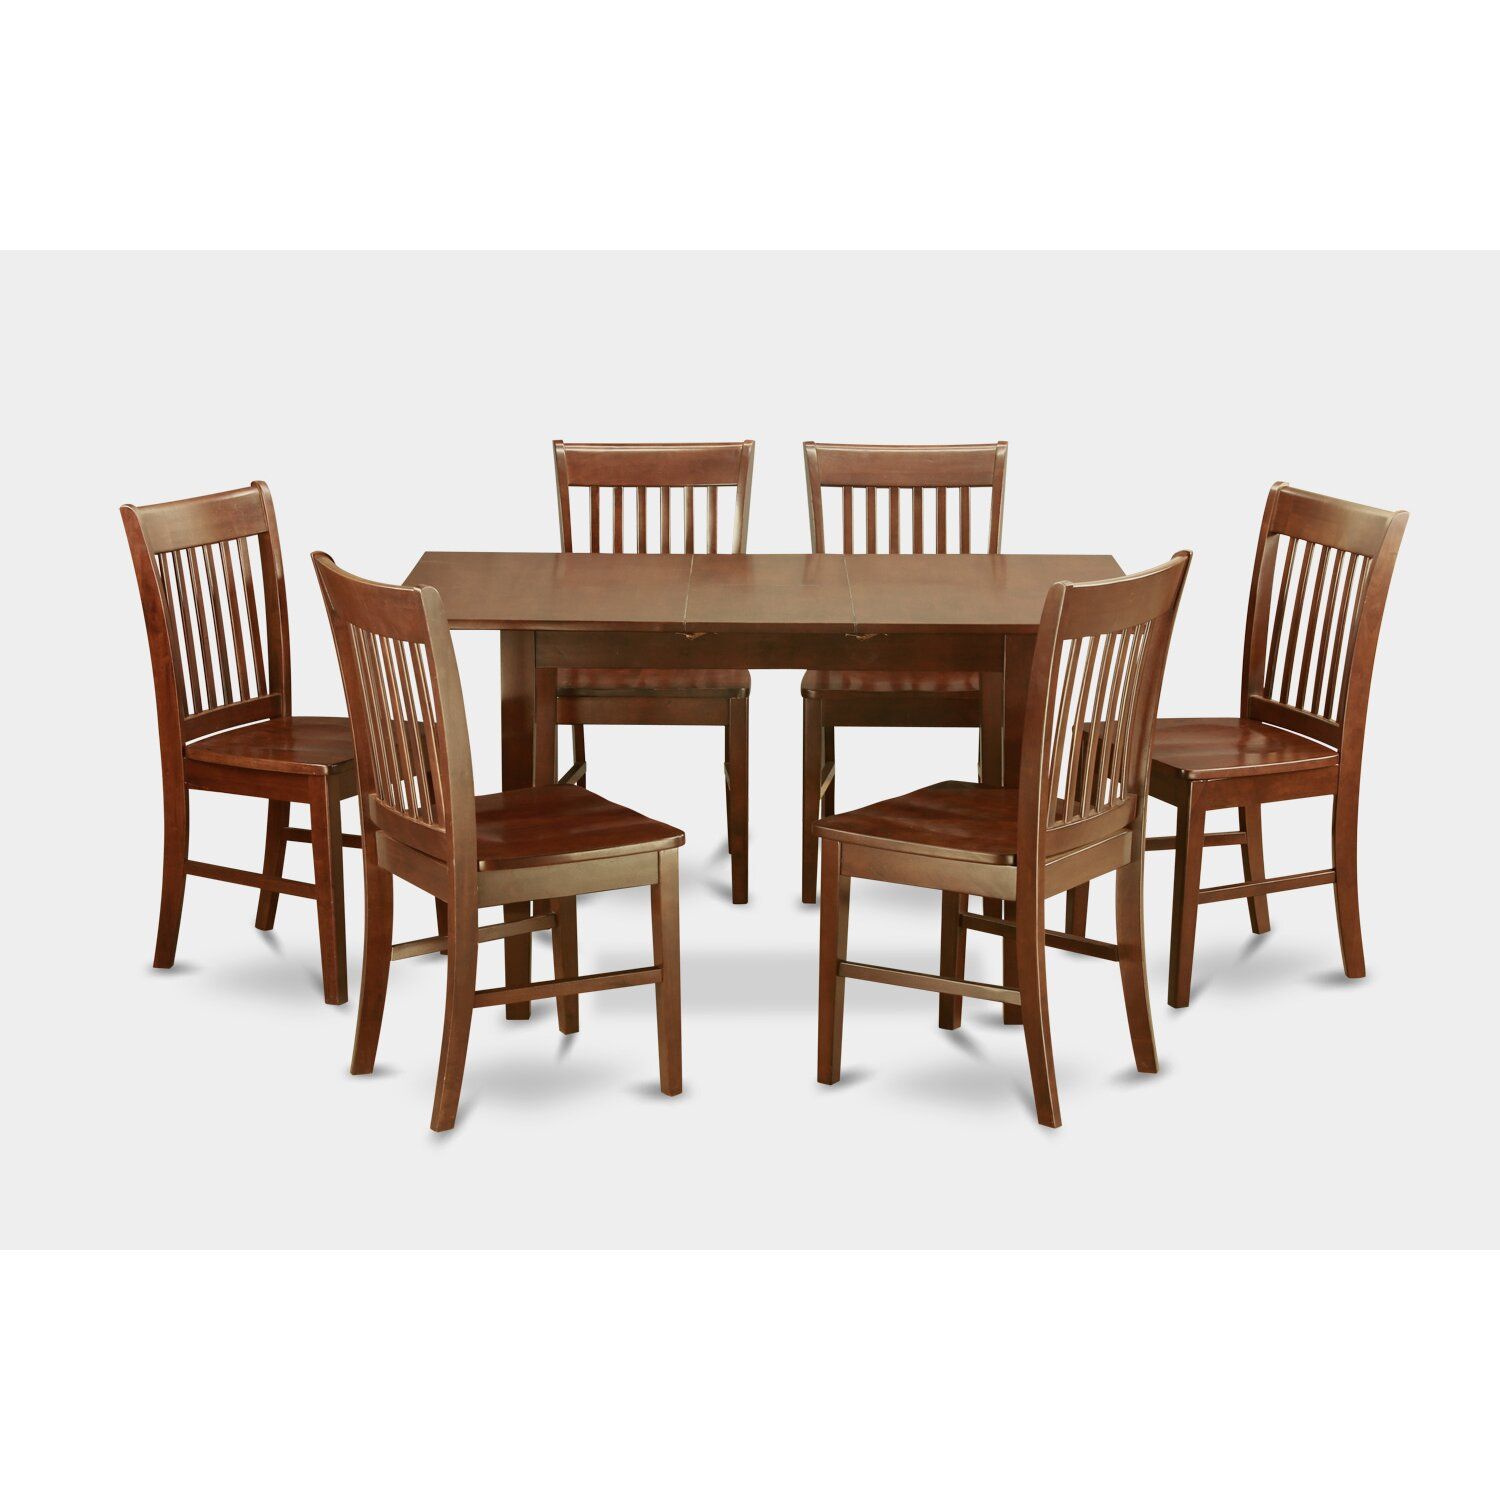 East west norfolk 7 piece dining set reviews wayfair for Furniture 7 reviews